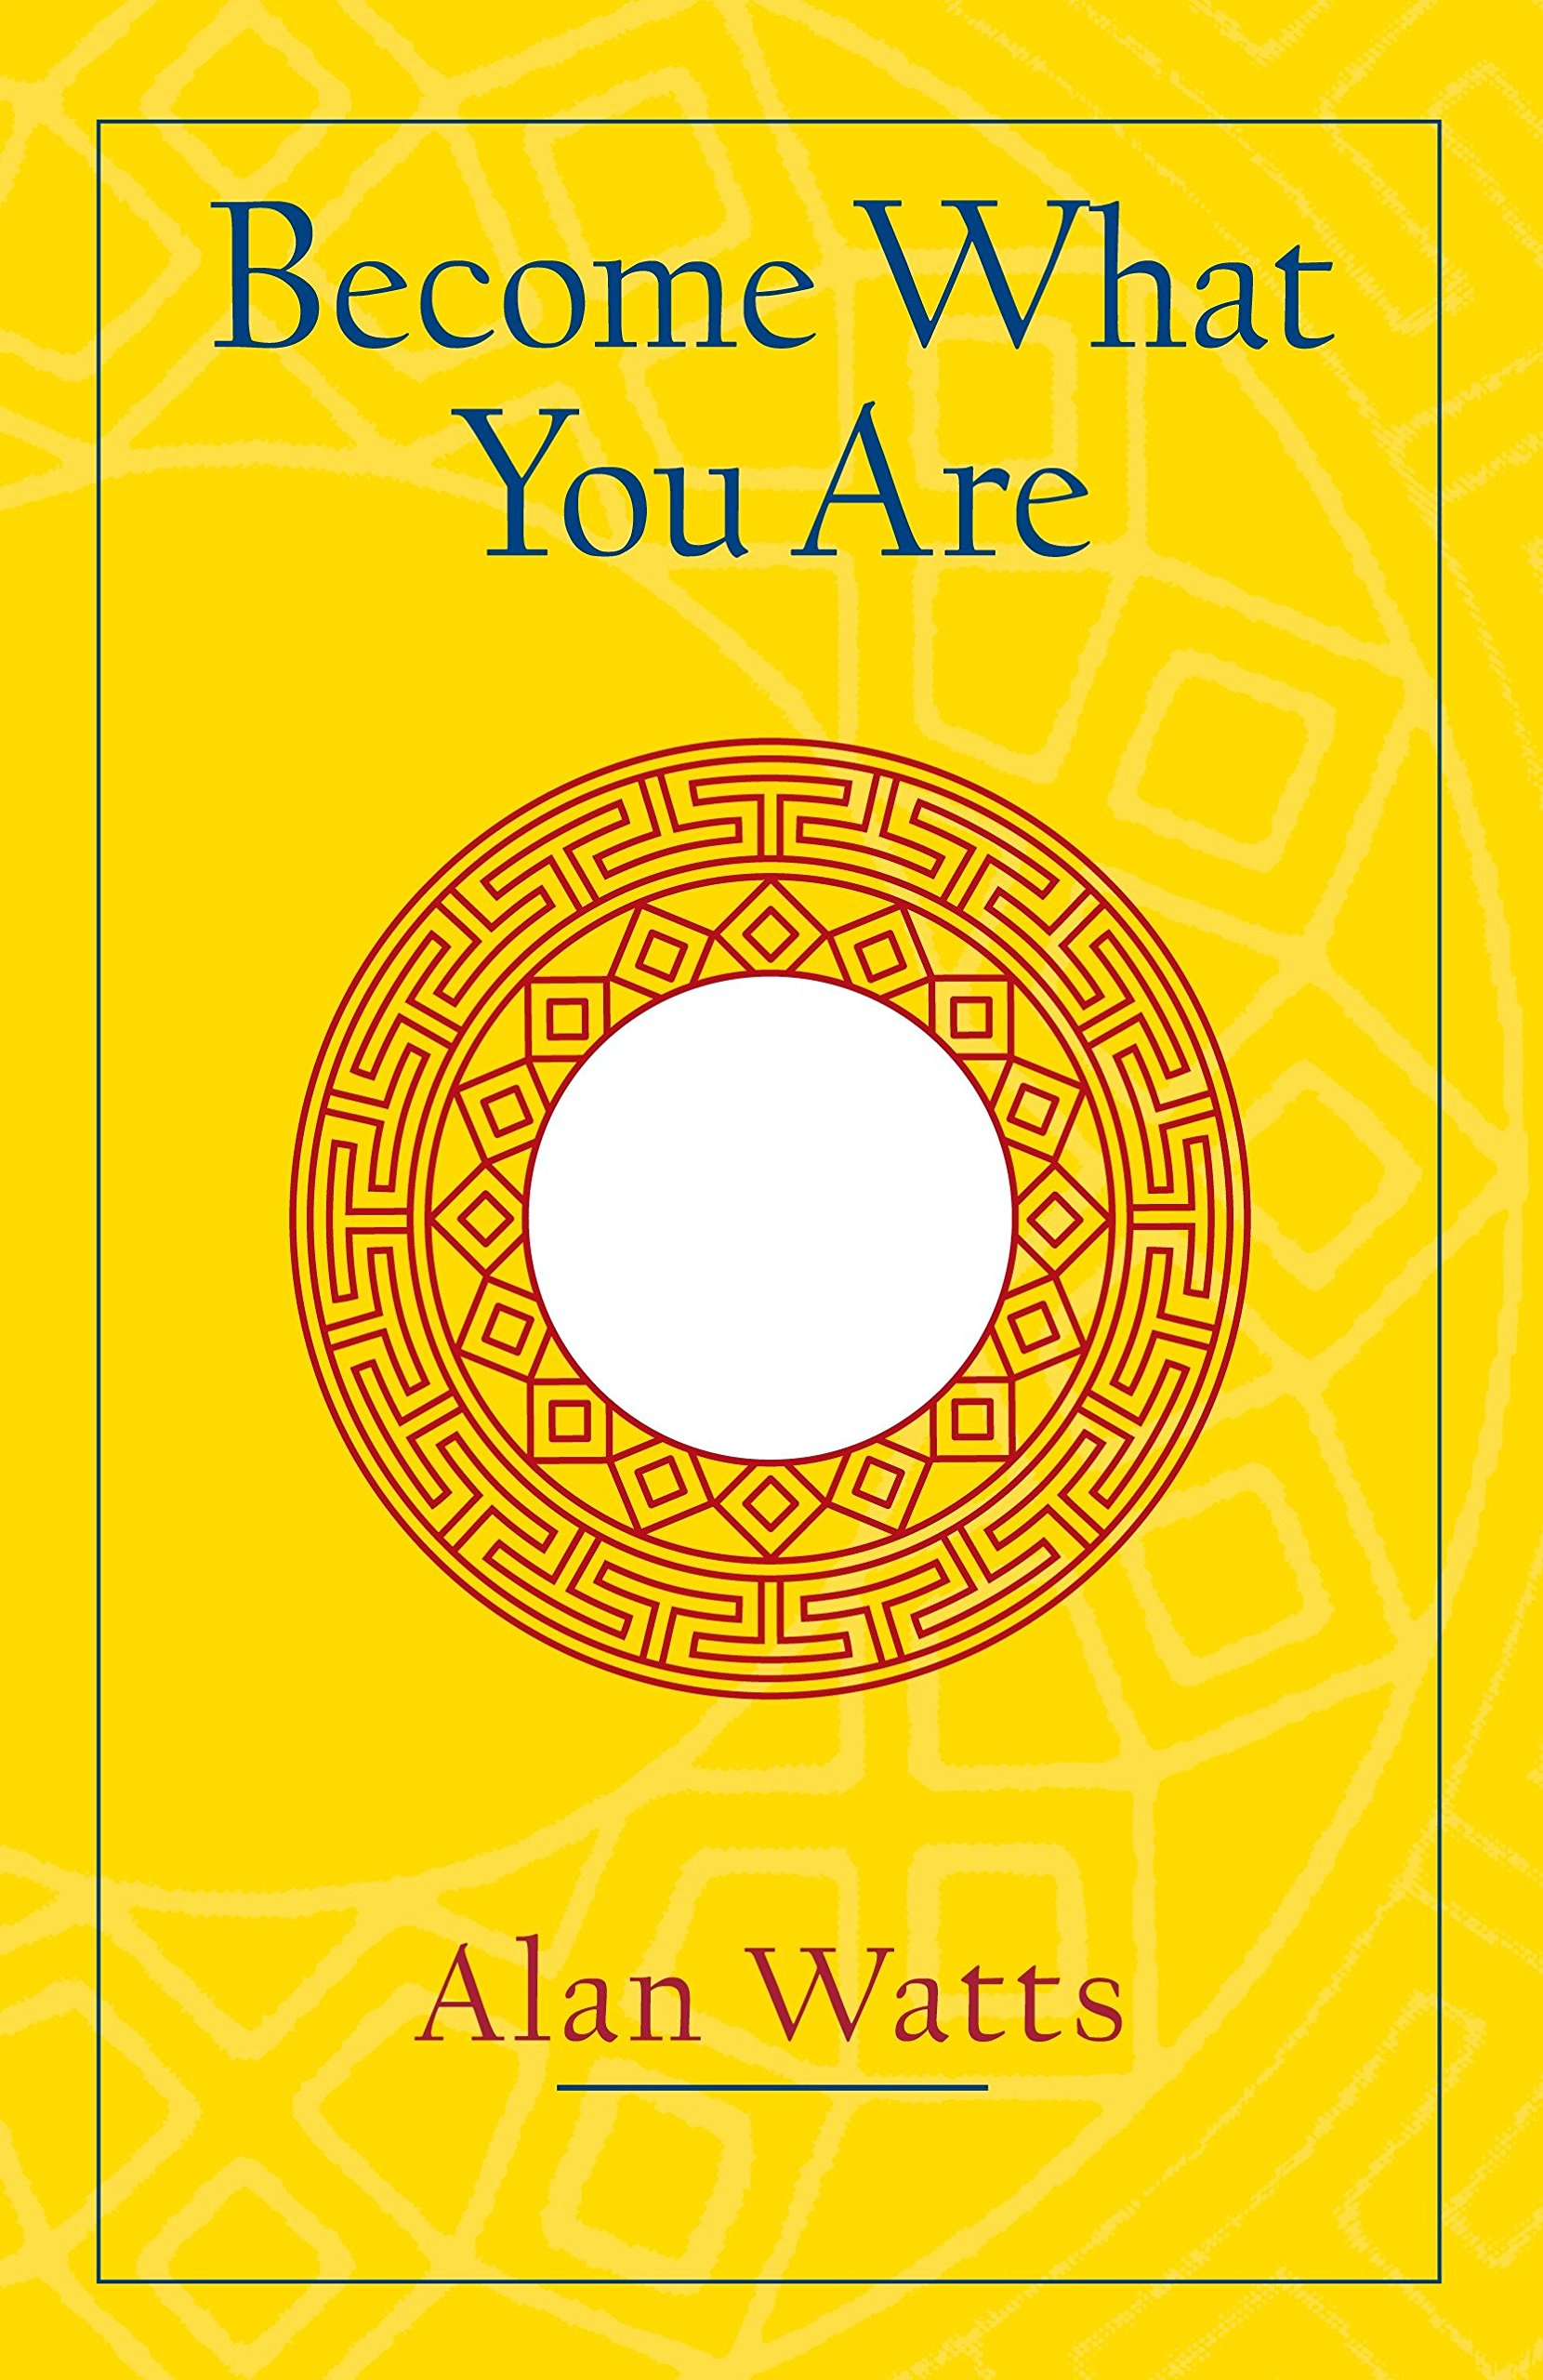 Buy become what you are expanded edition book online at low prices buy become what you are expanded edition book online at low prices in india become what you are expanded edition reviews ratings amazon fandeluxe Images